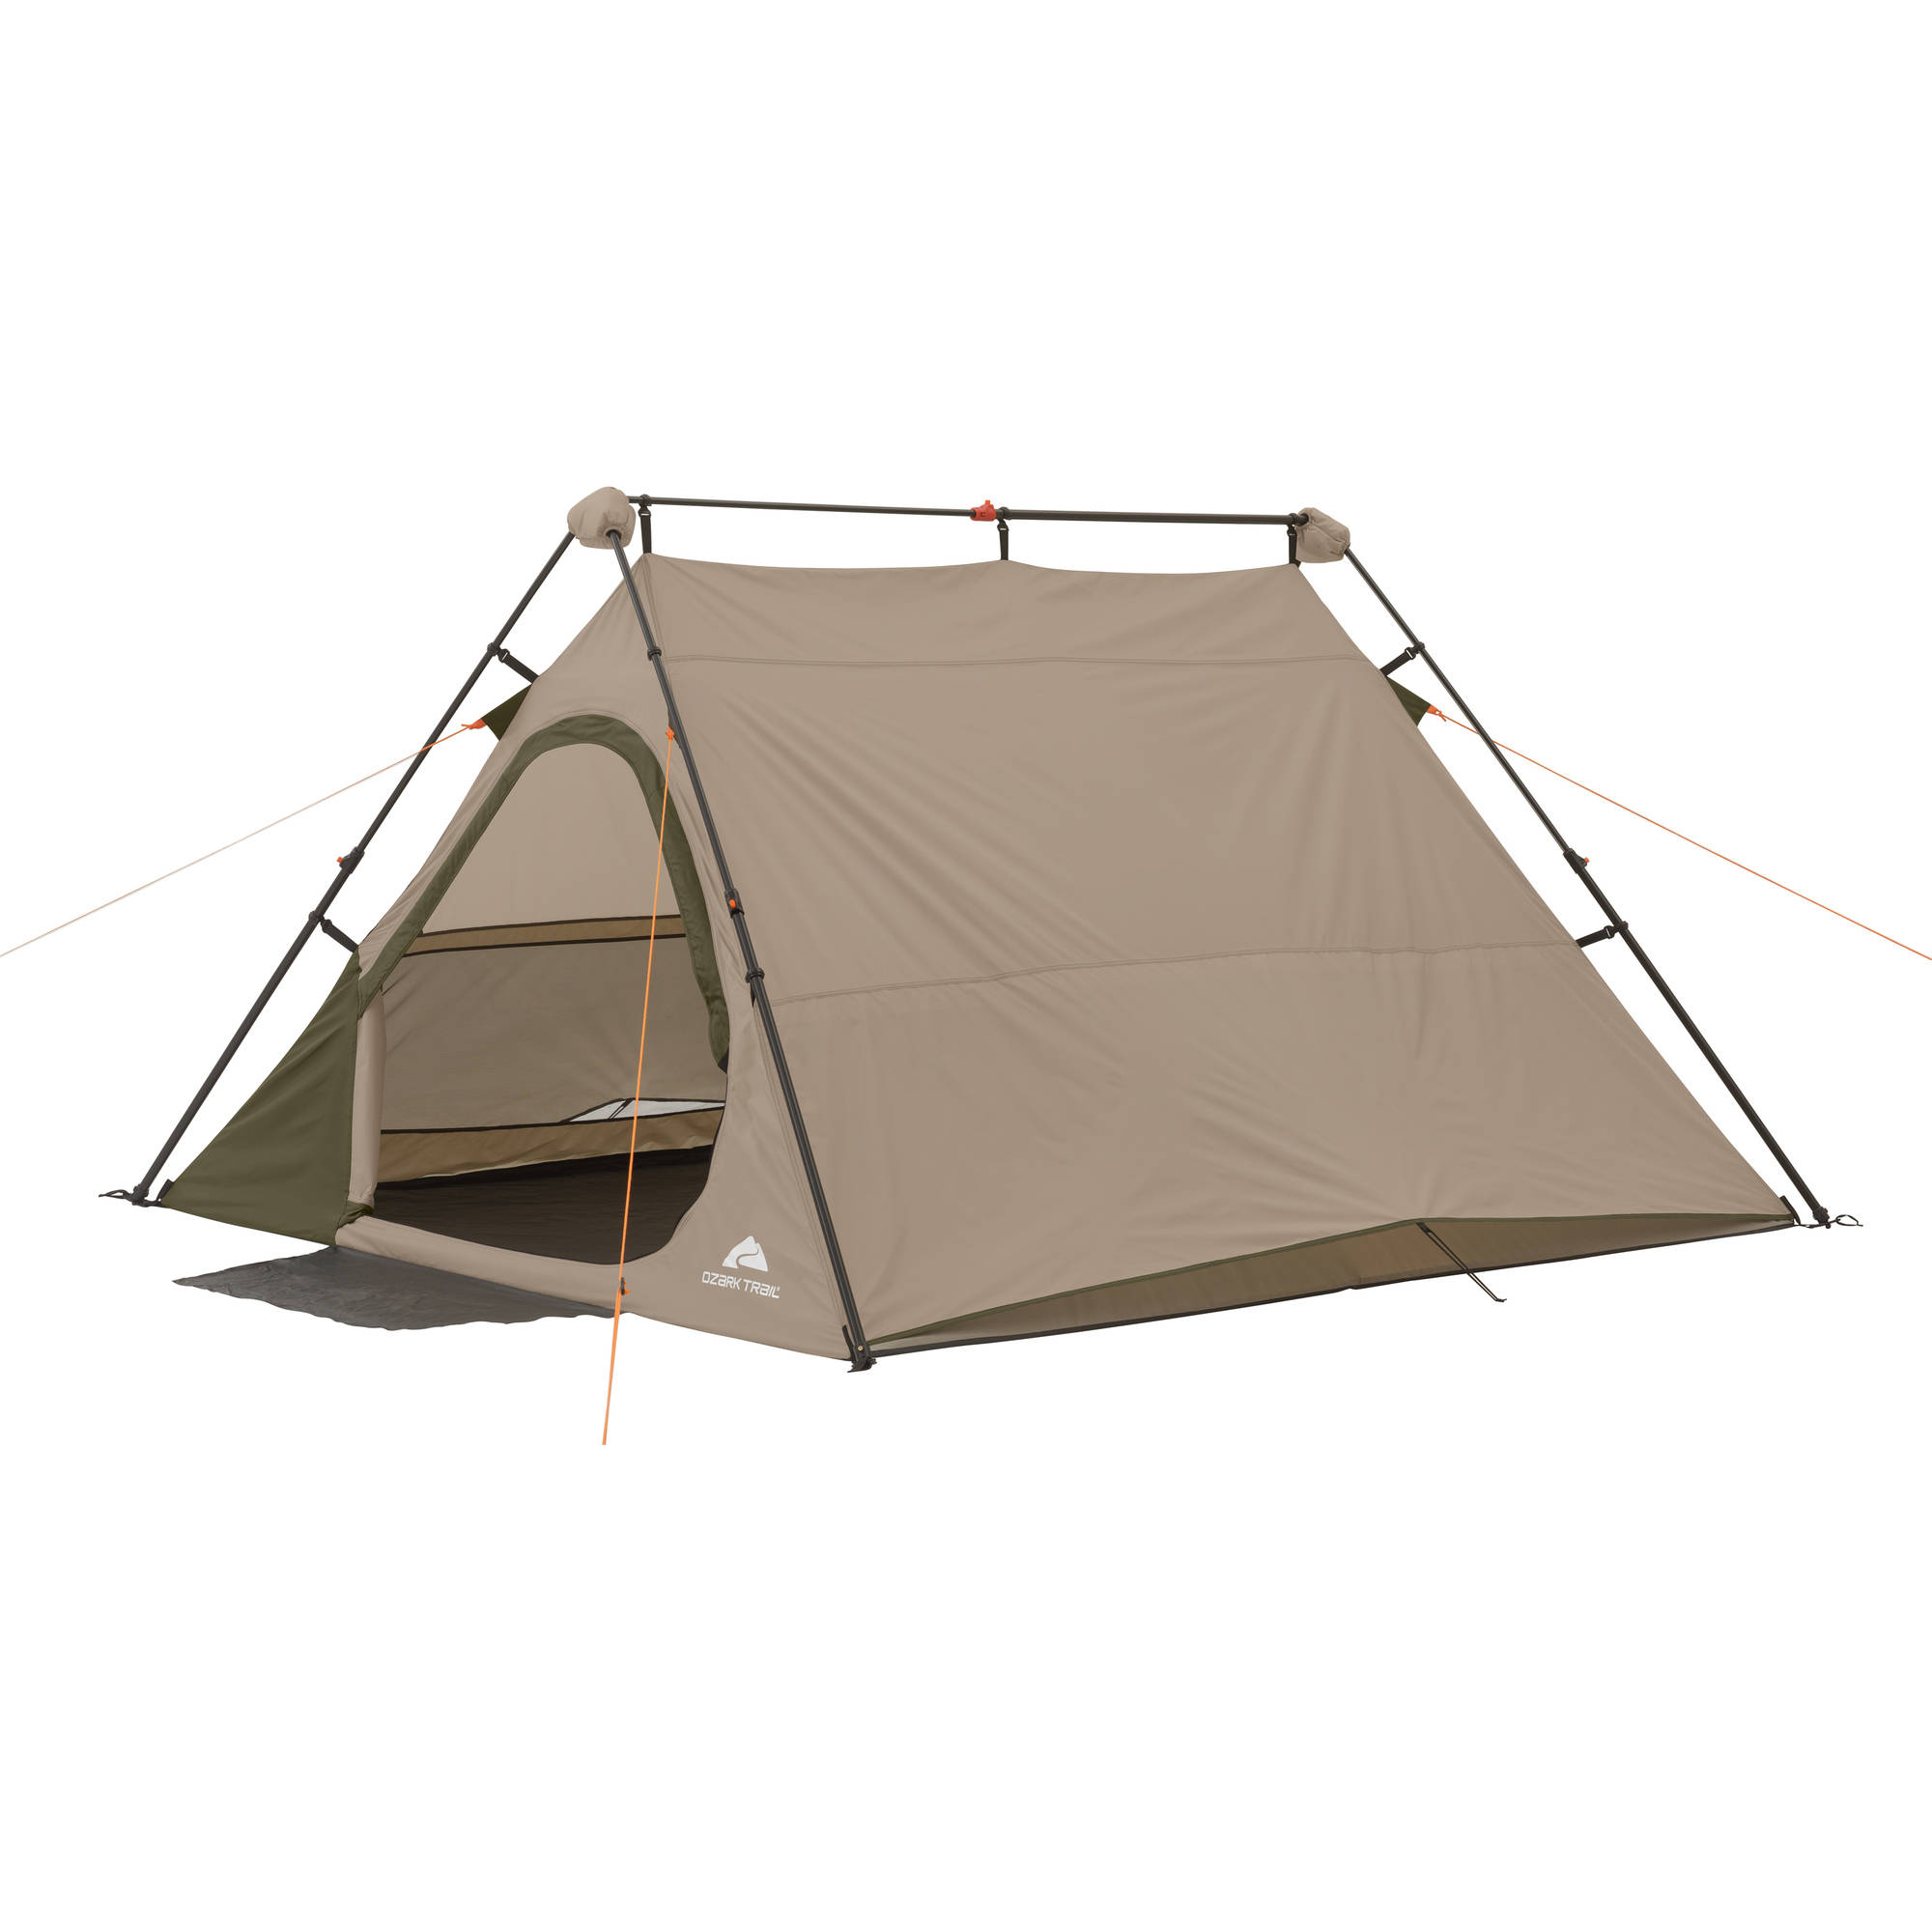 Ozark Trail 4-Person 8' x 7' Instant A-Frame Tent